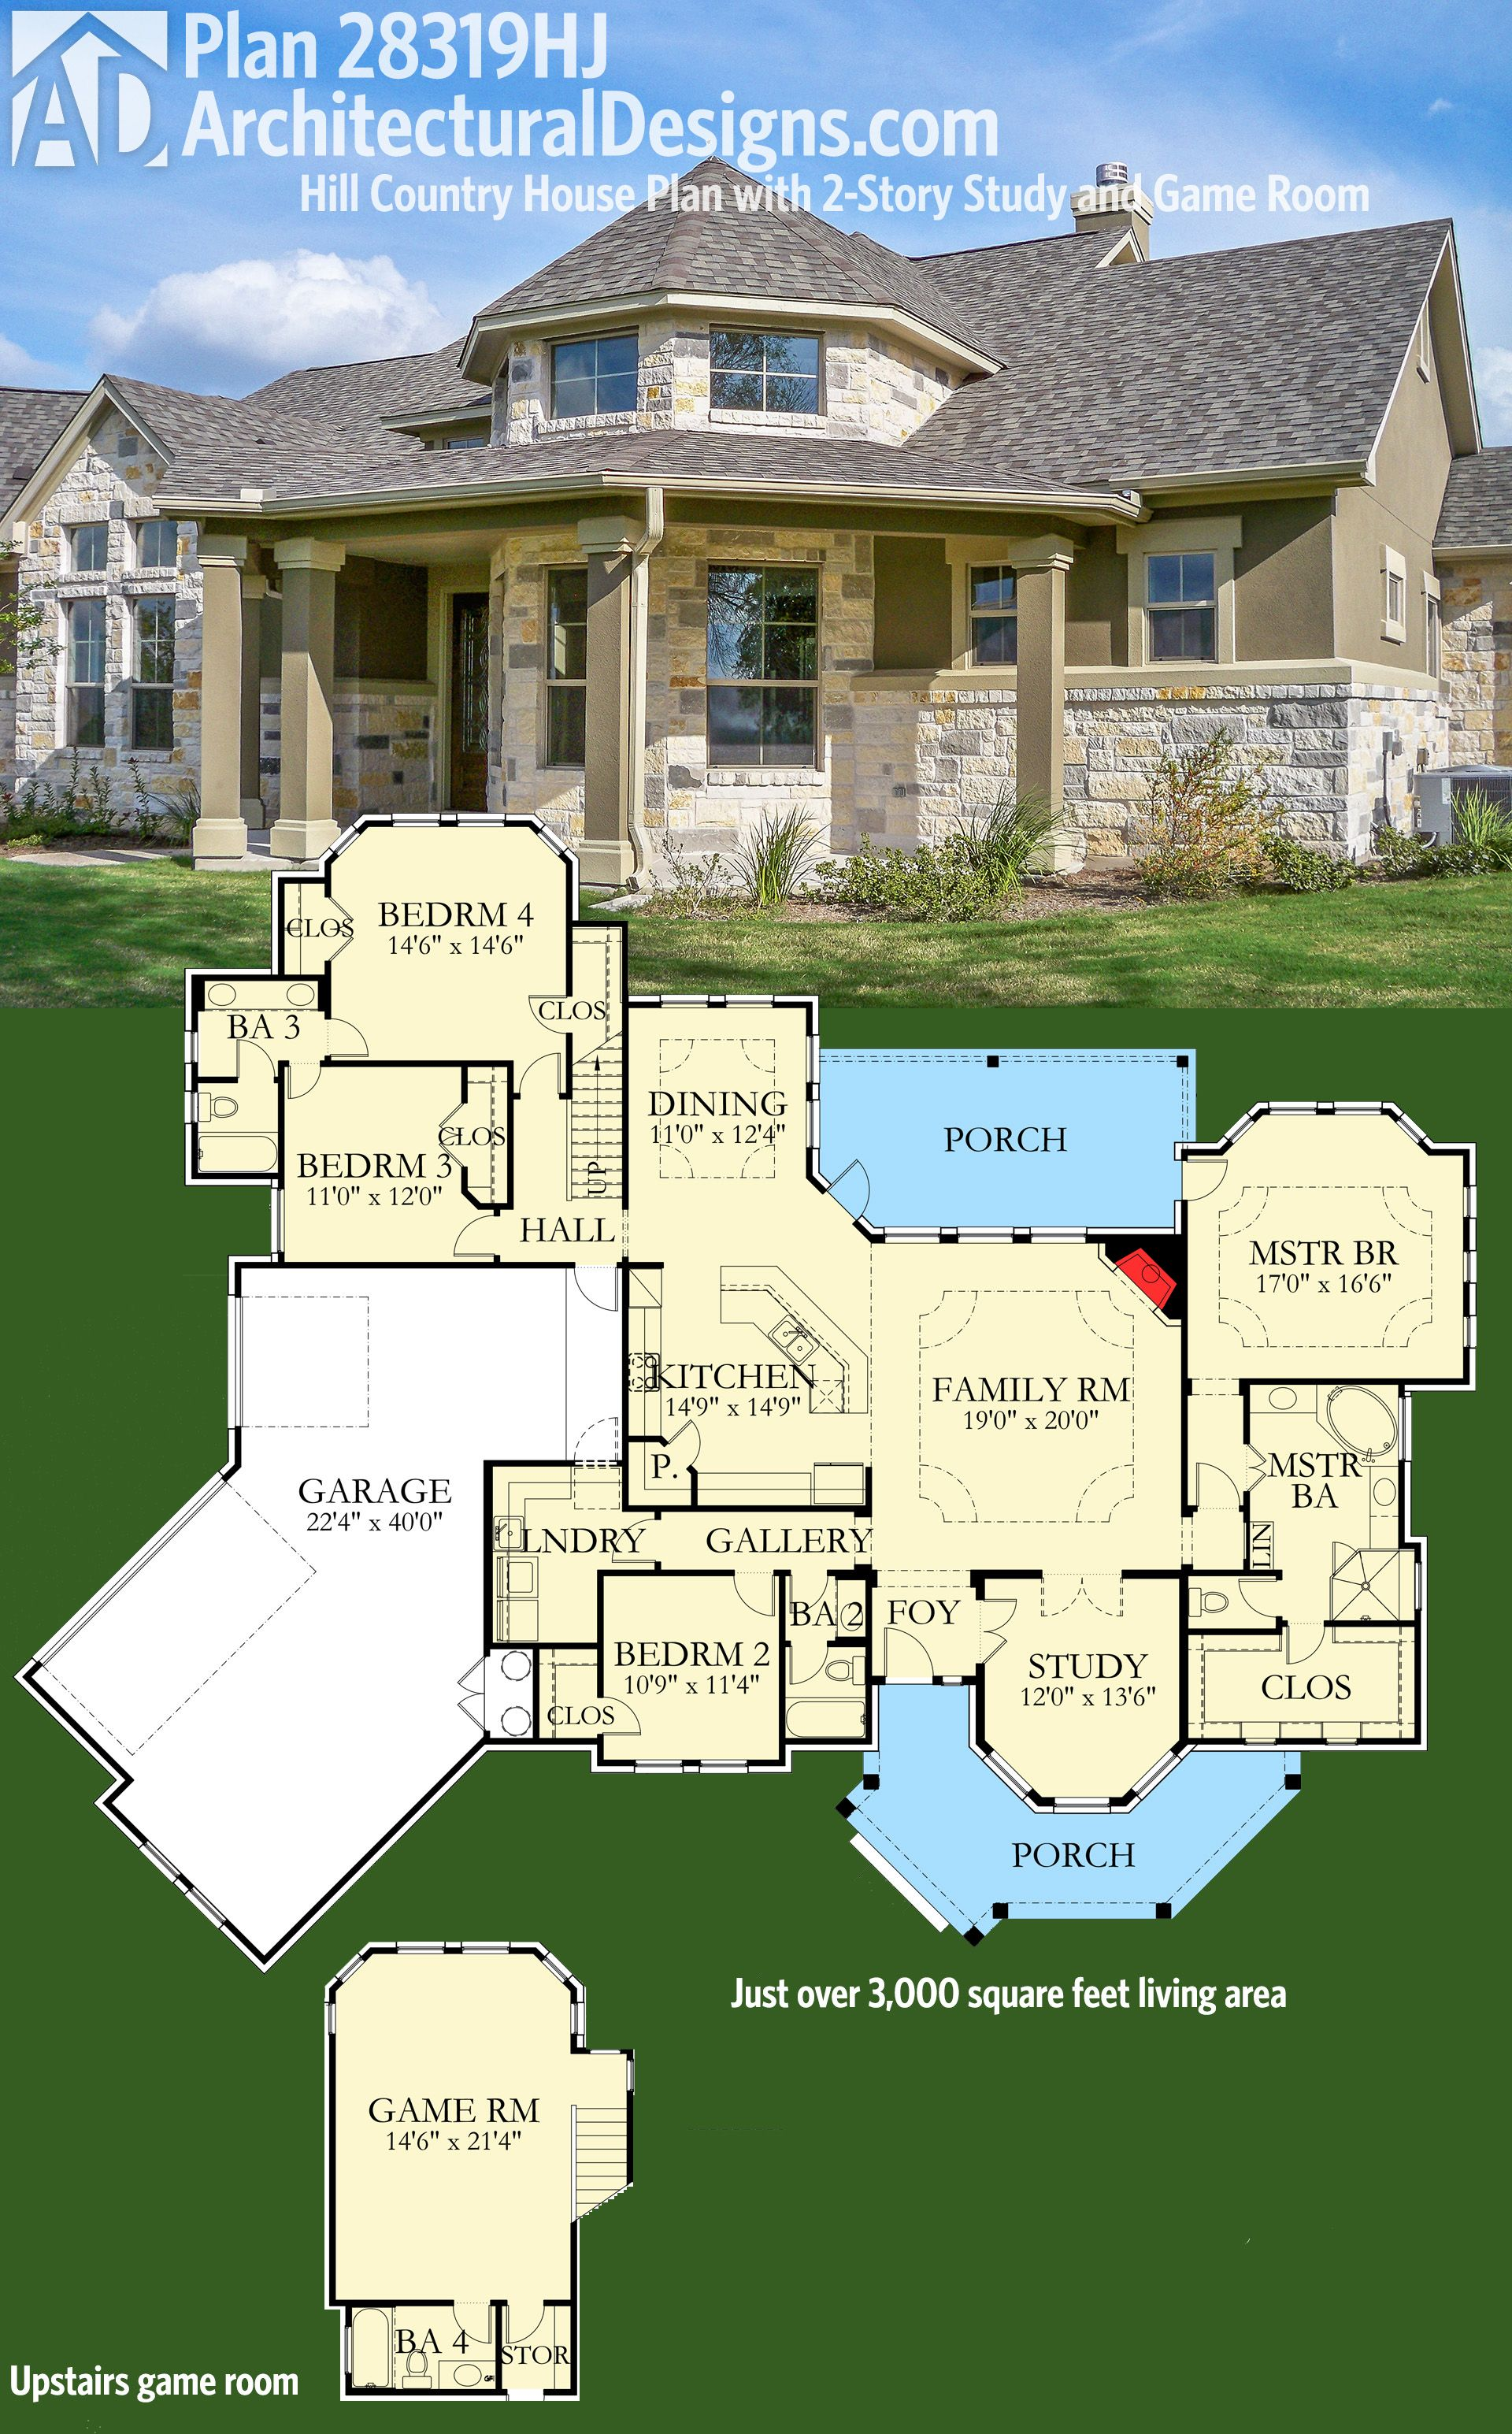 Plan 28319hj hill country house plan with 2 story study for Upstairs plans